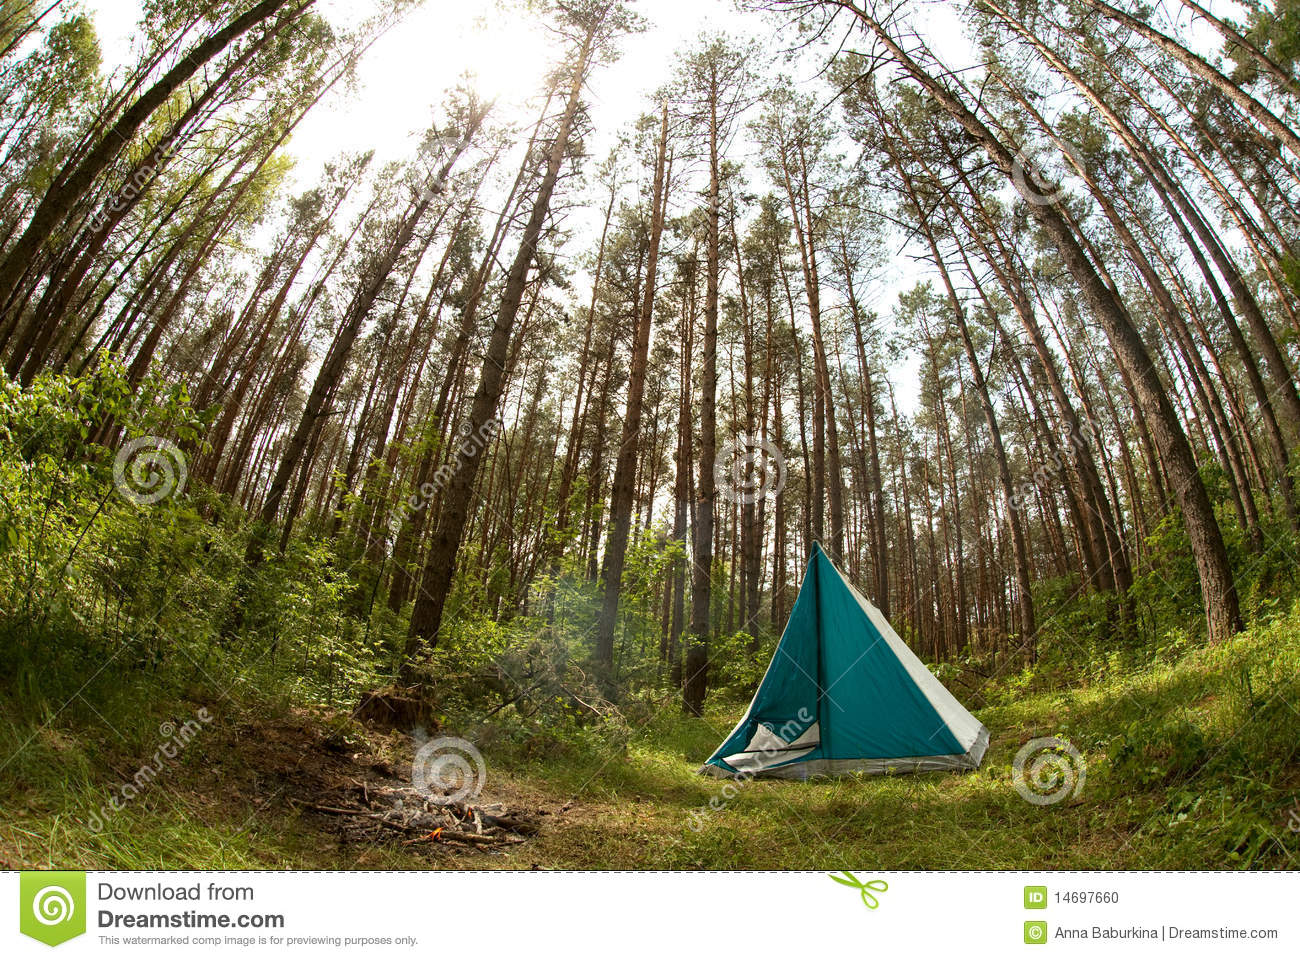 Tent in forest & Tent in forest stock photo. Image of wild nature life - 14697660